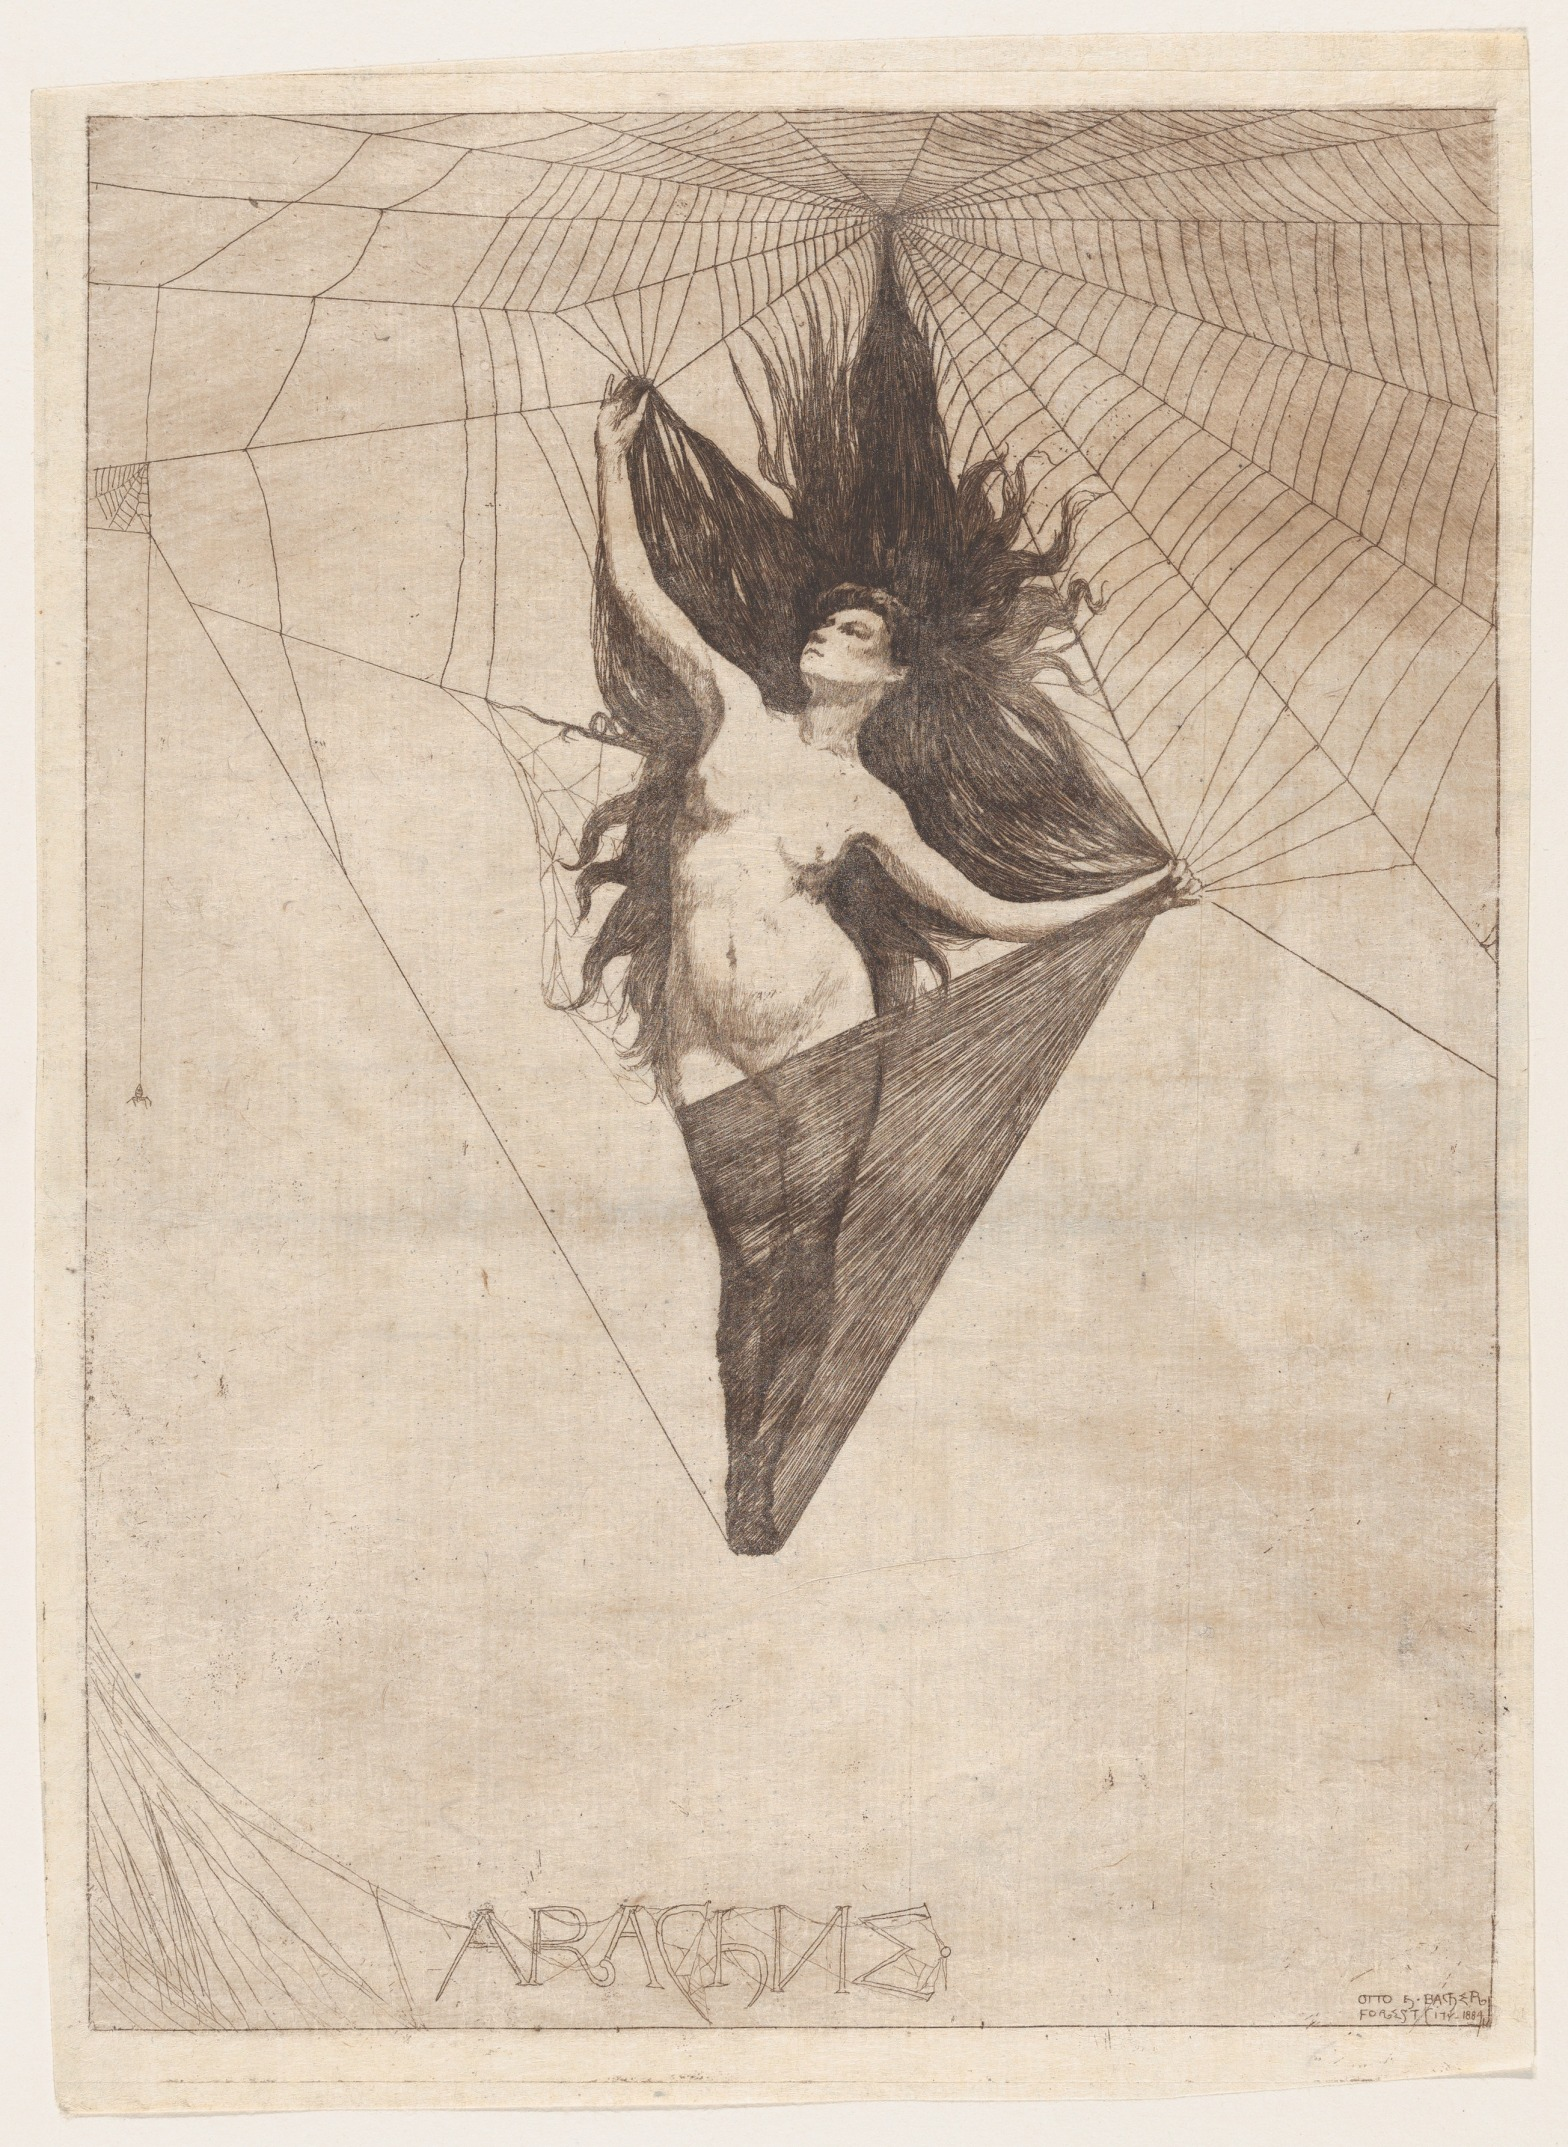 Arachne (1884) by Otto Henry Bacher. Source: Met Museum